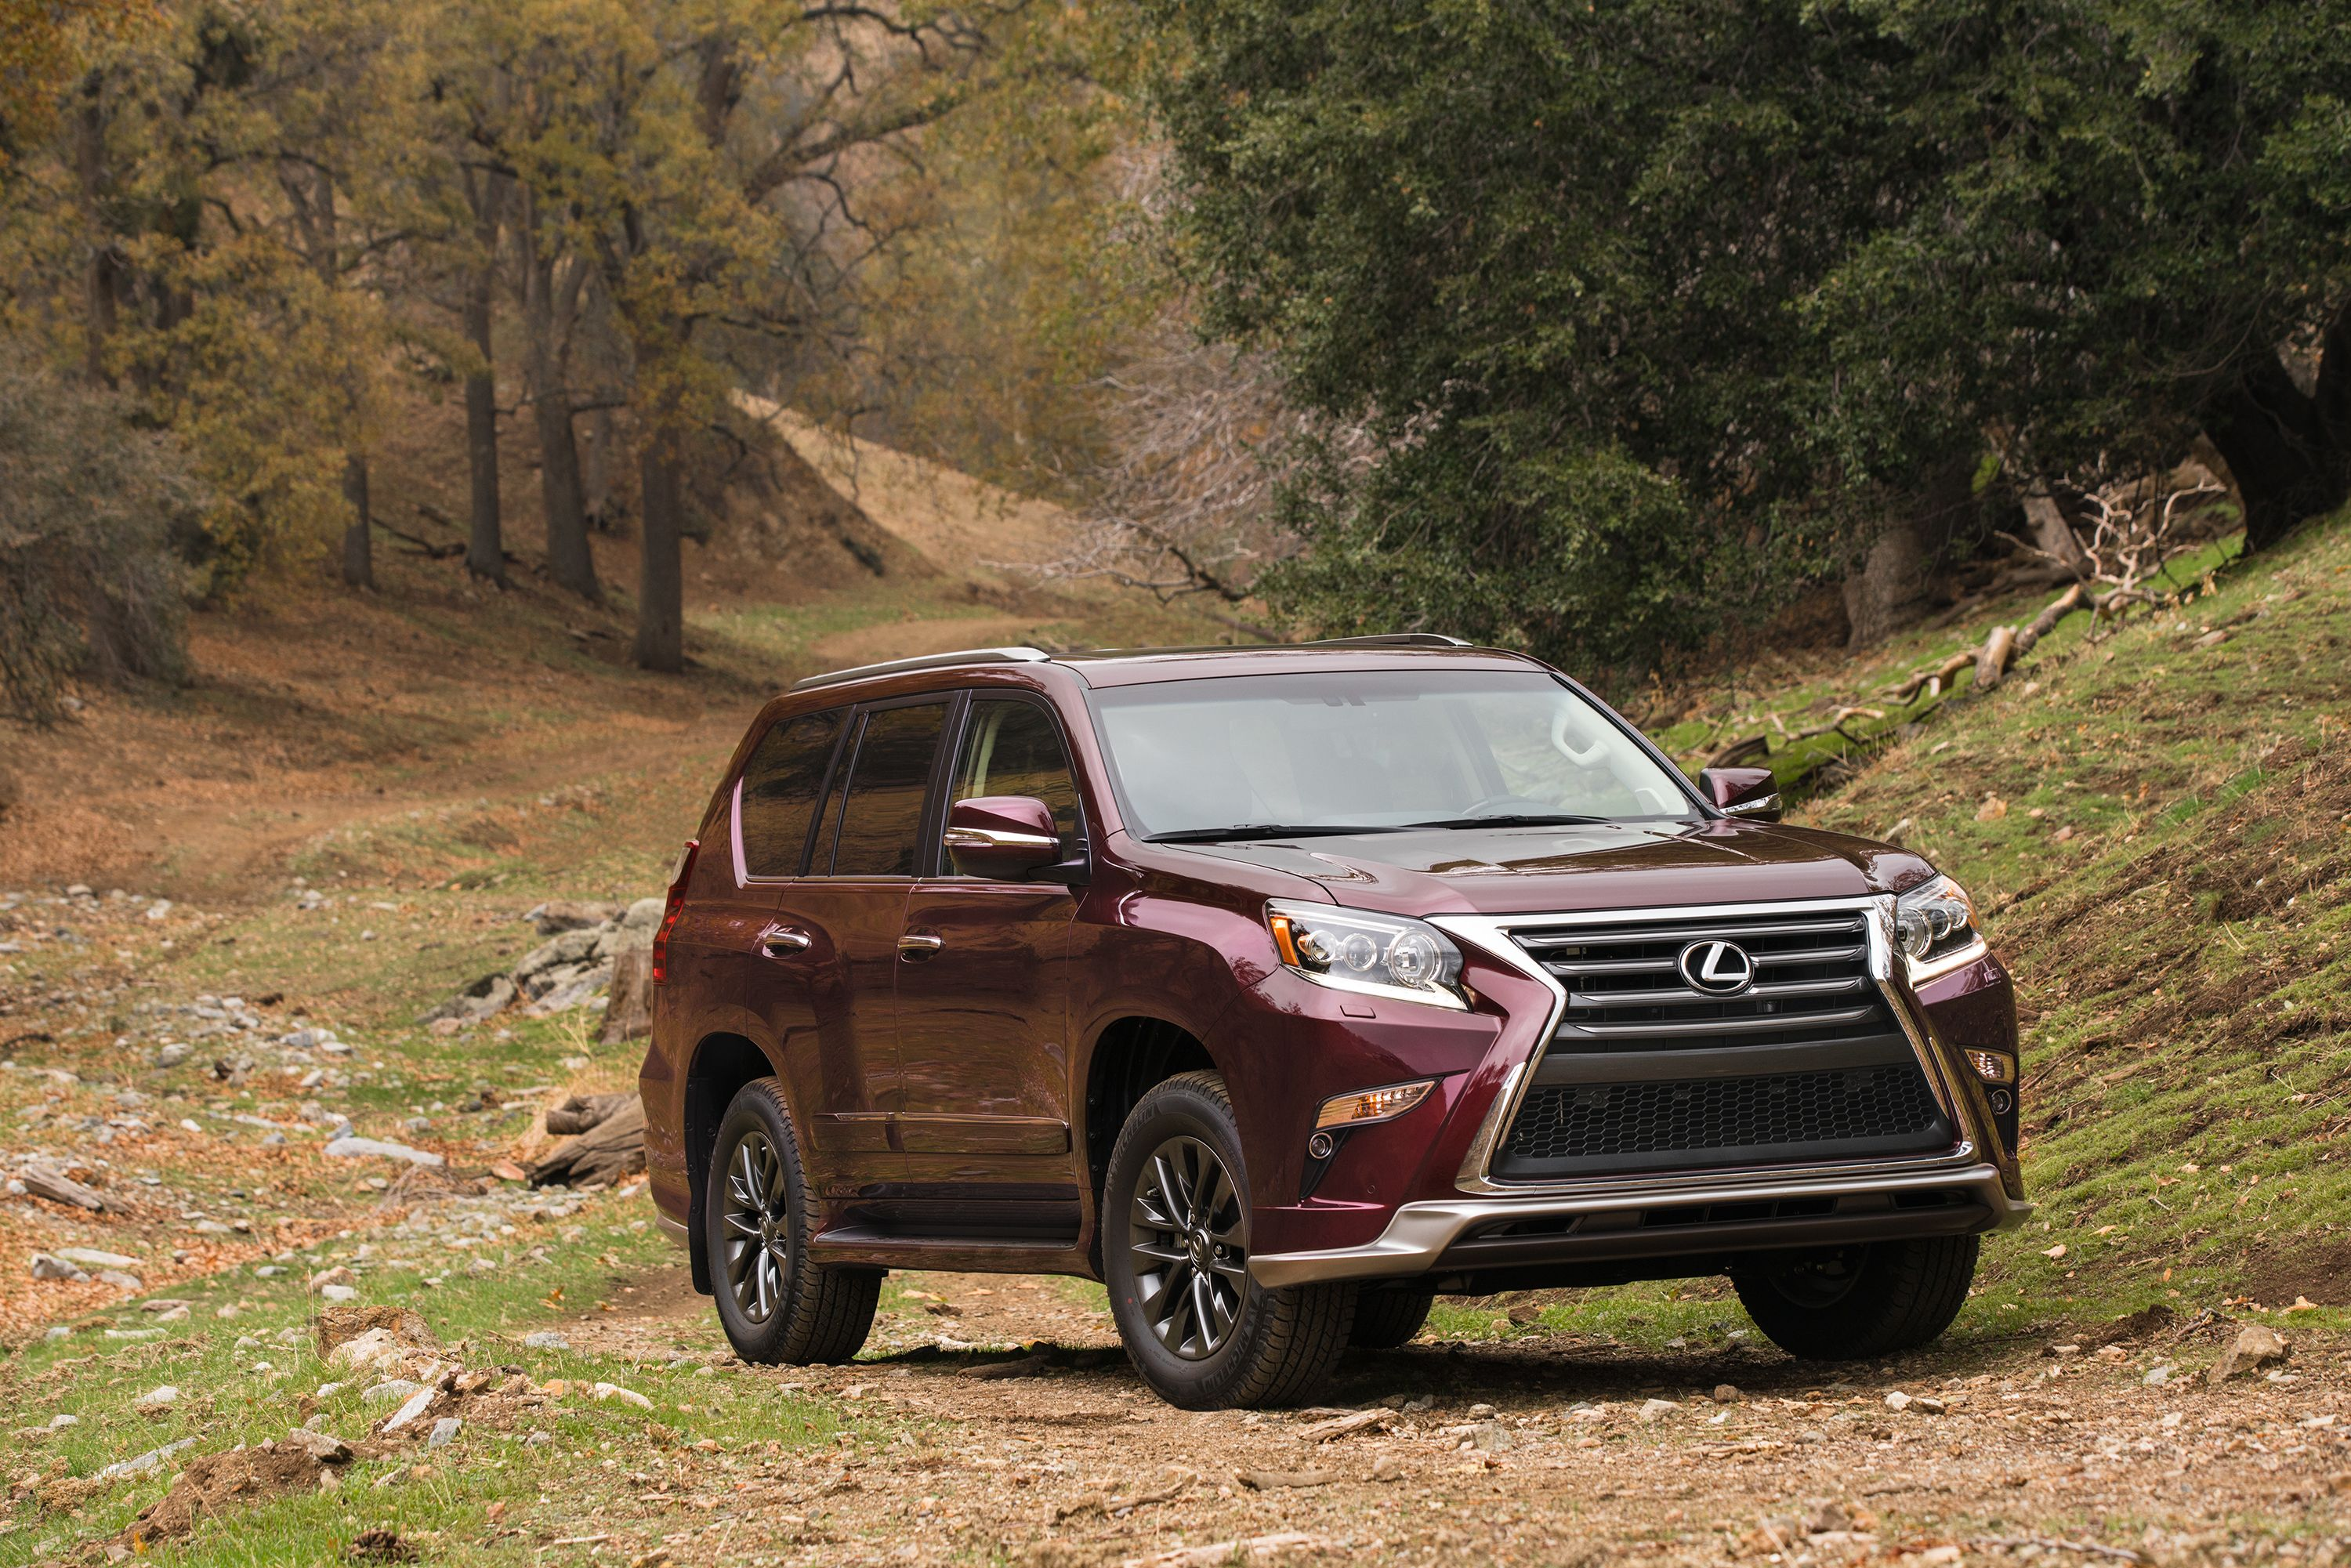 2019 Lexus Gx Review Pricing And Specs